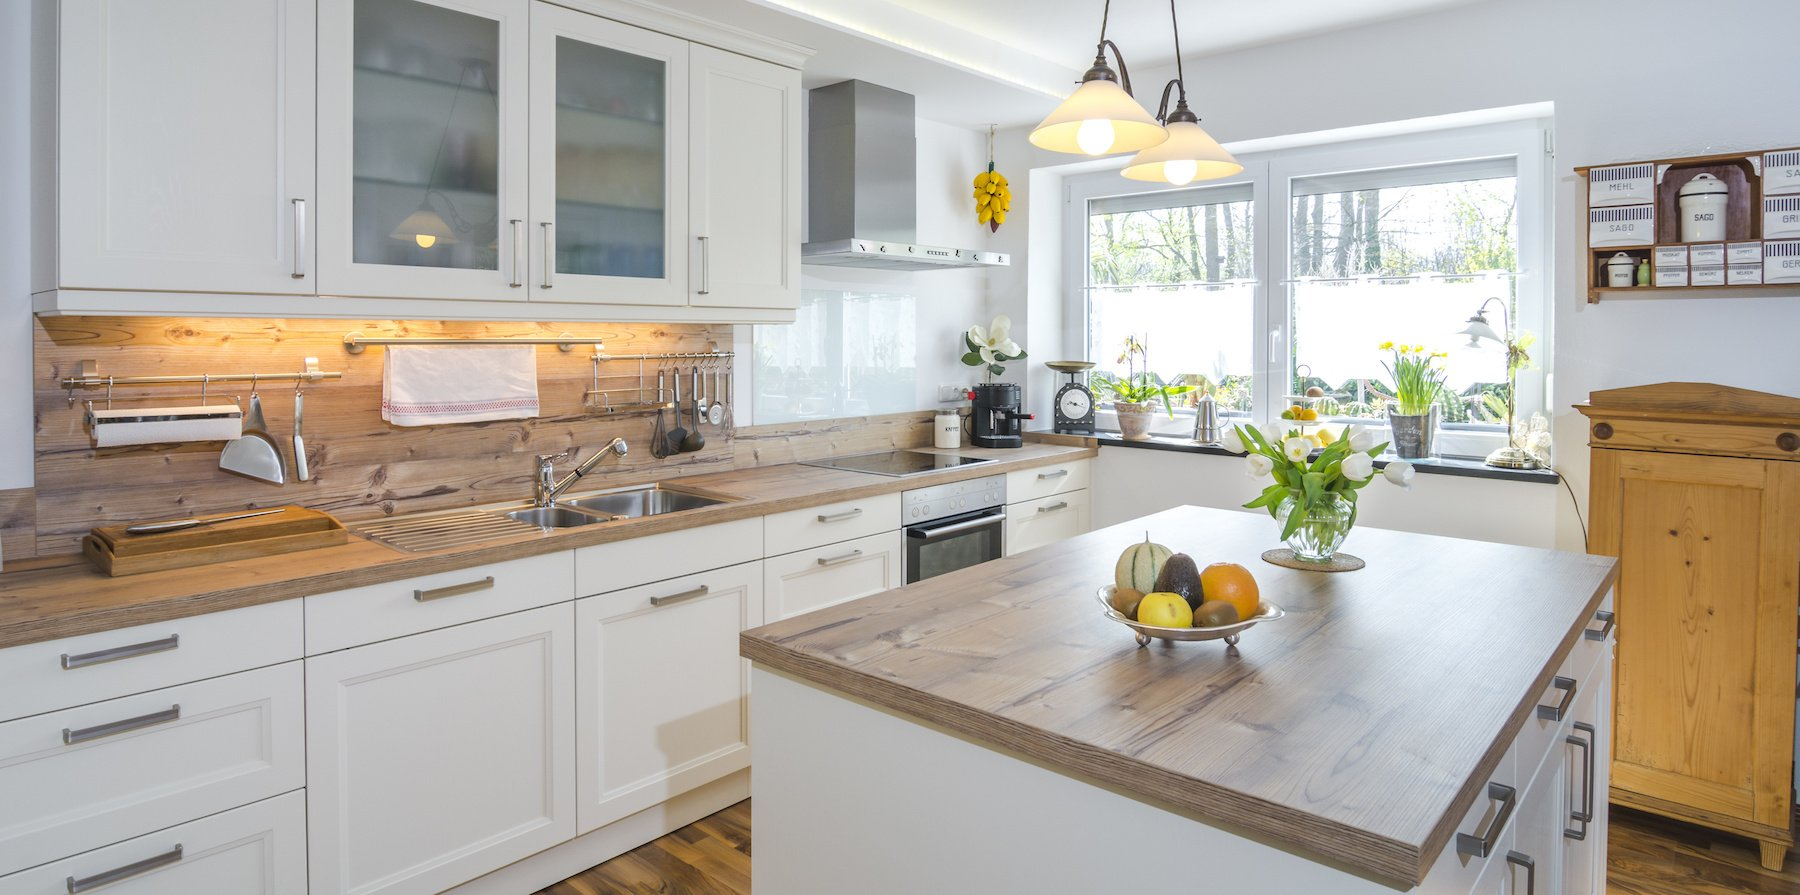 Update Old Kitchen Lighting In Your Kelowna Home Epic Electric - Kitchen lighting companies